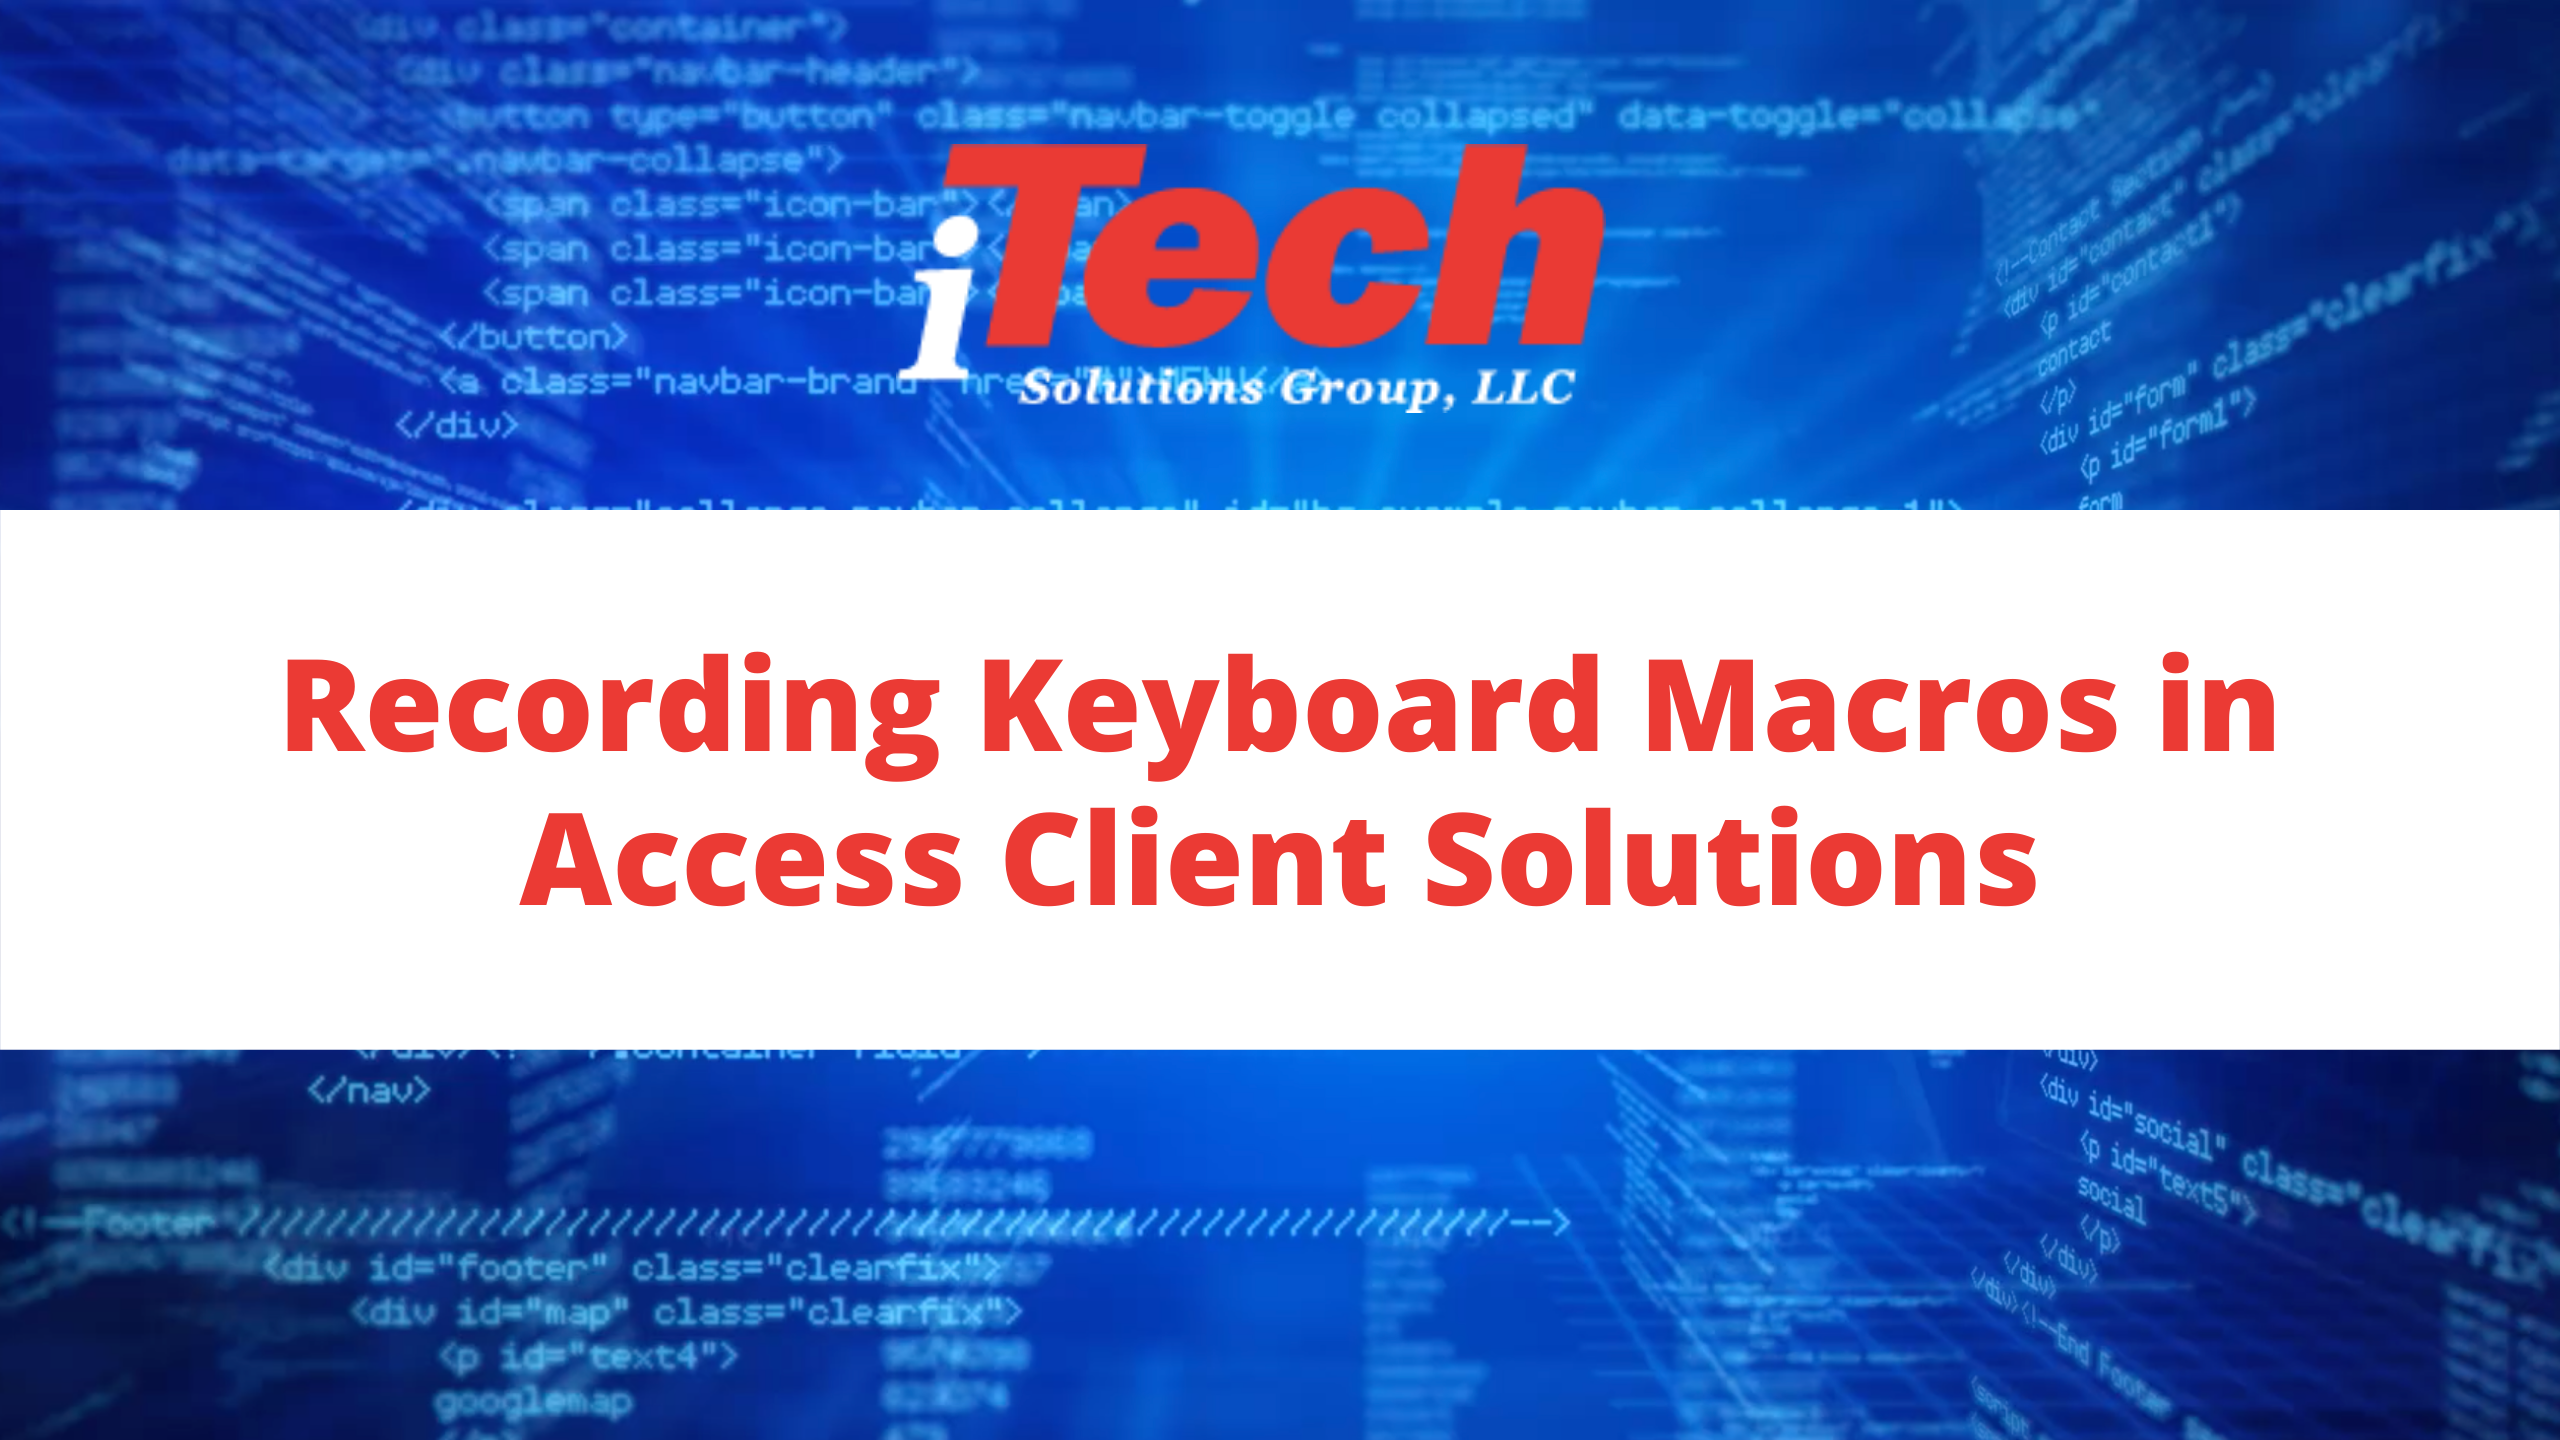 Recording Keyboard Macros in Access Client Solutions